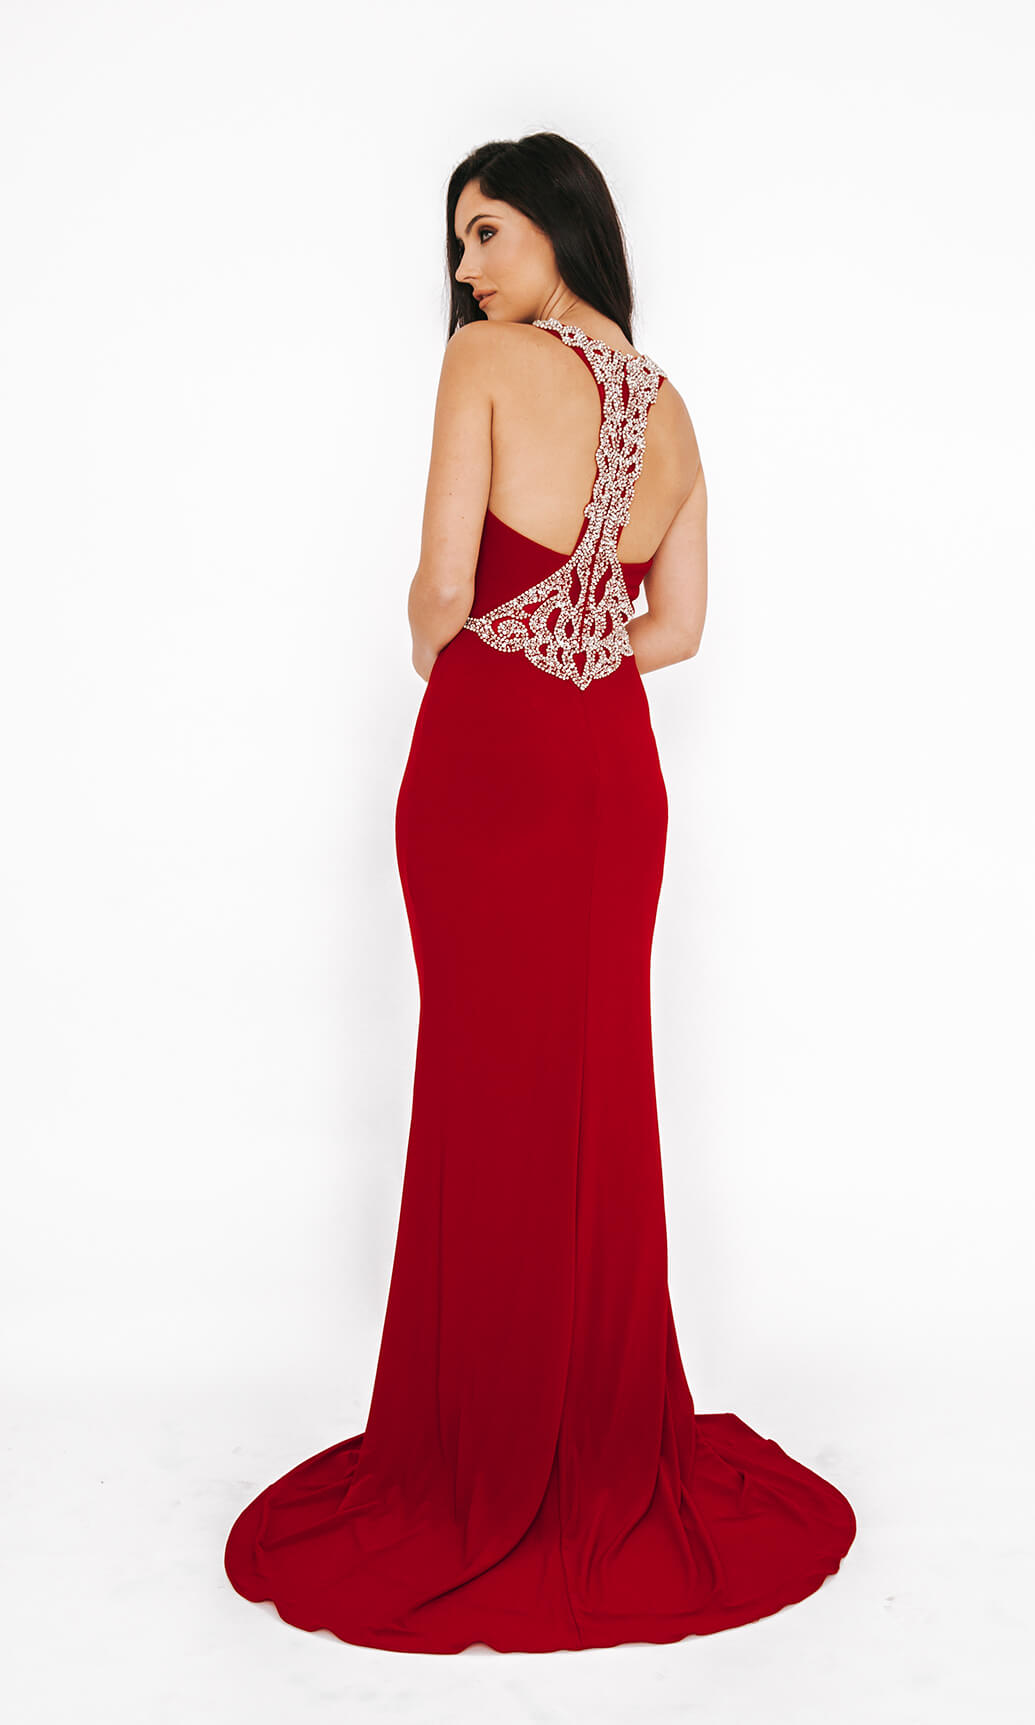 1013654 Red Dynasty Racer Back Evening Prom Dress